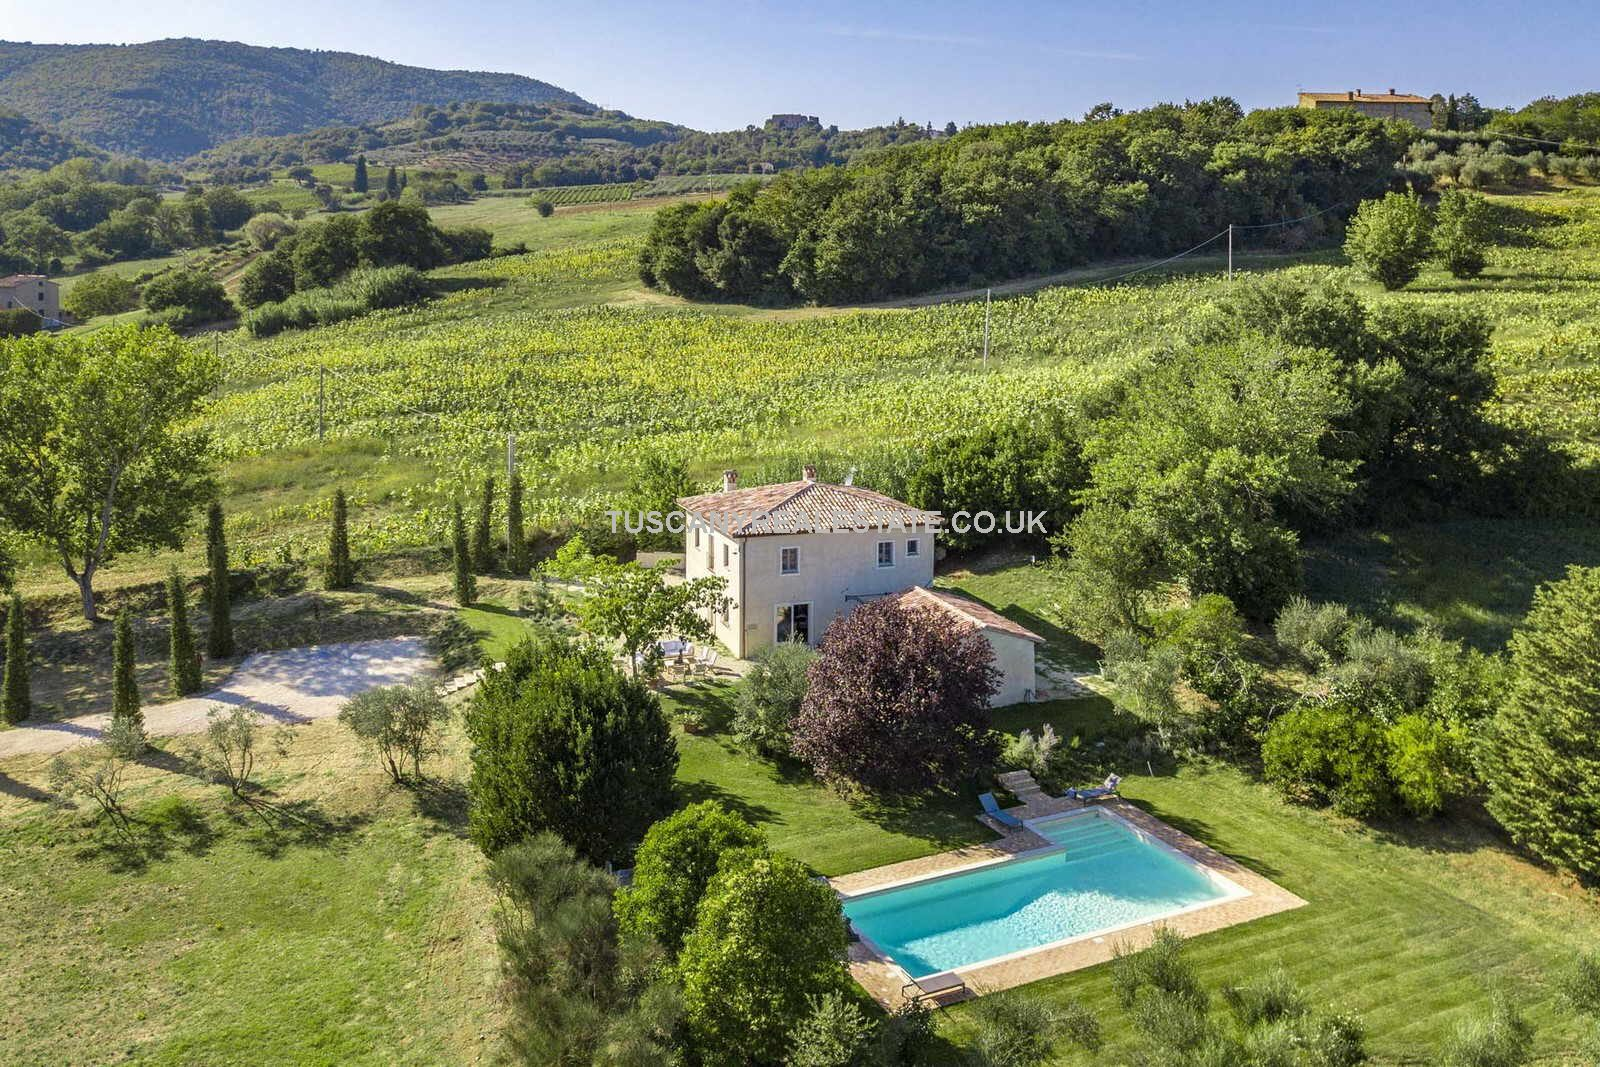 Restored Umbria Villa With Pool